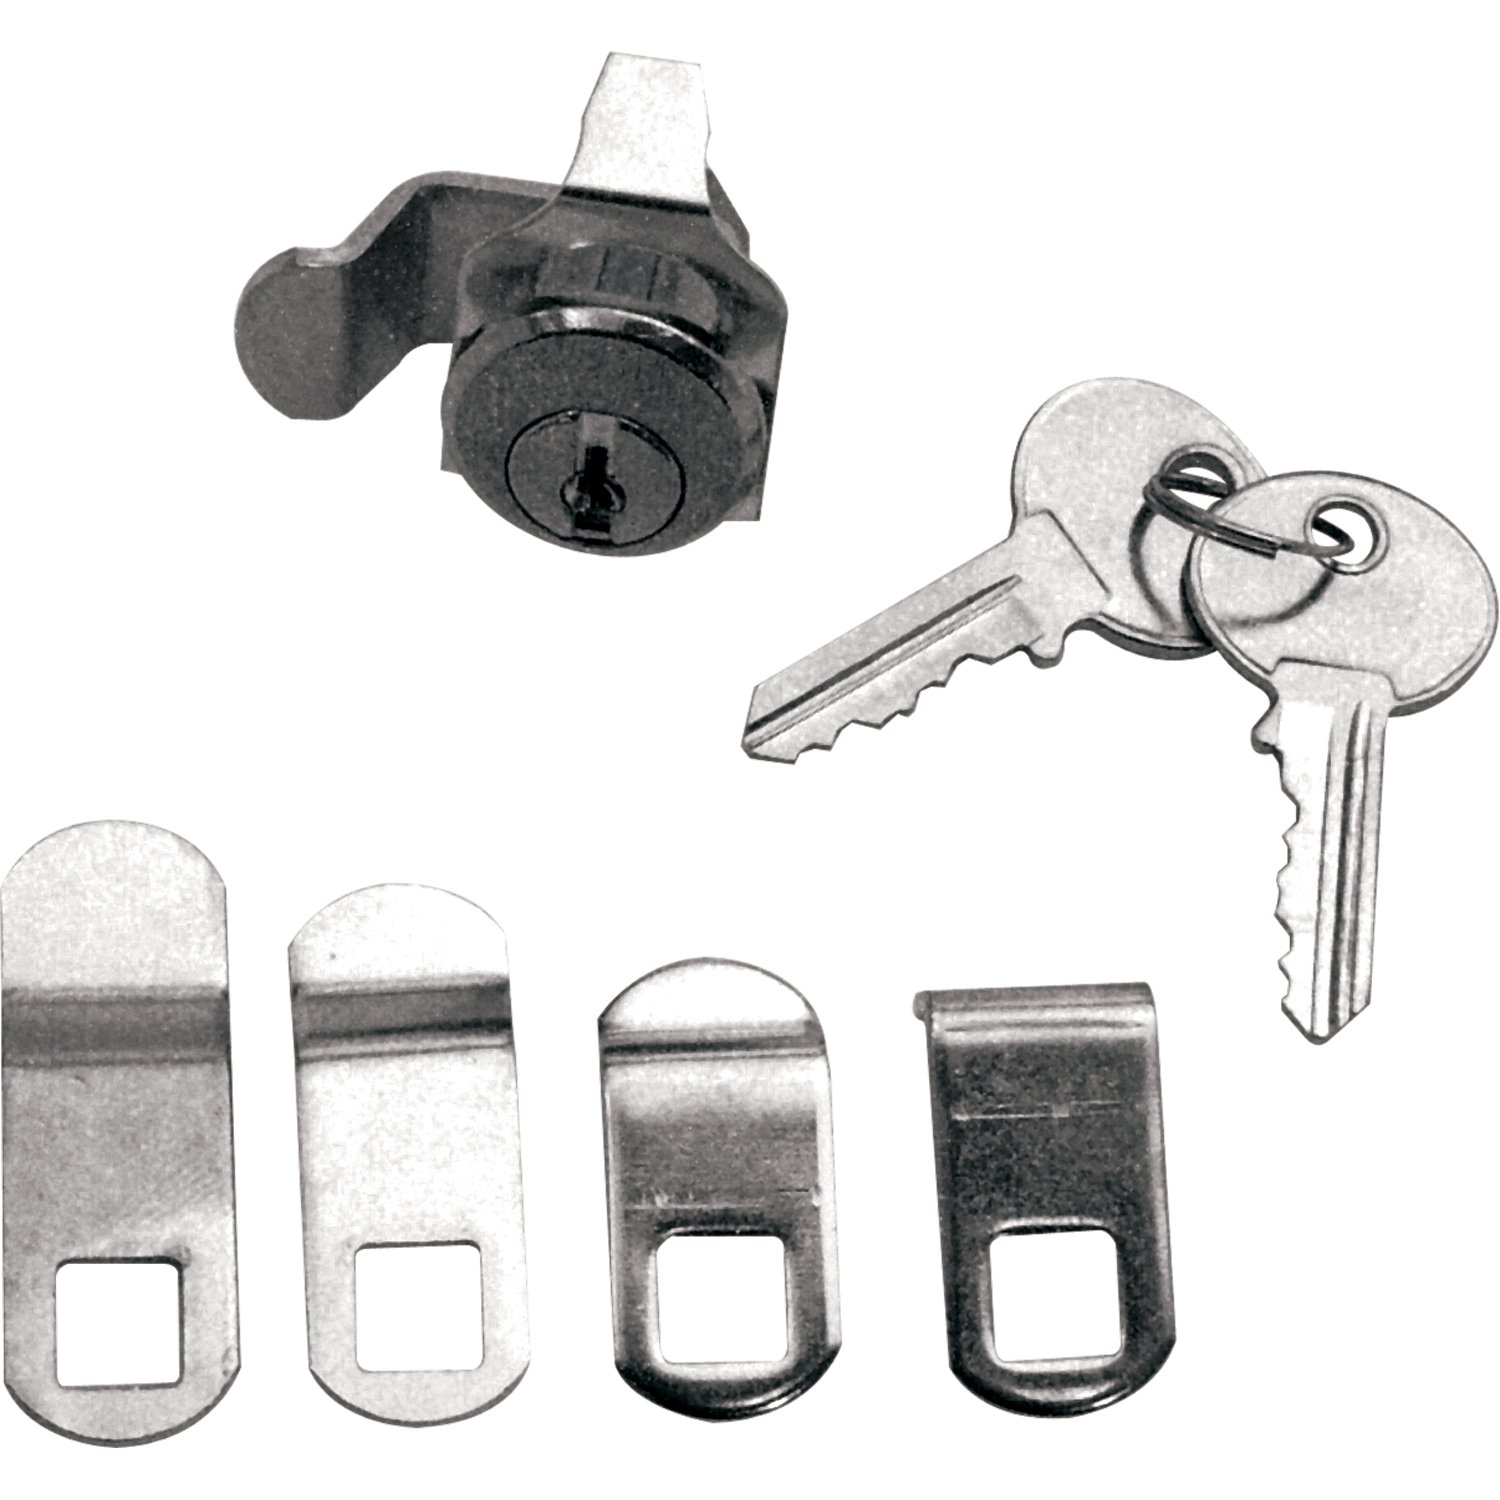 Prime Line Products S 4140 Universal Mailbox Lock Set With